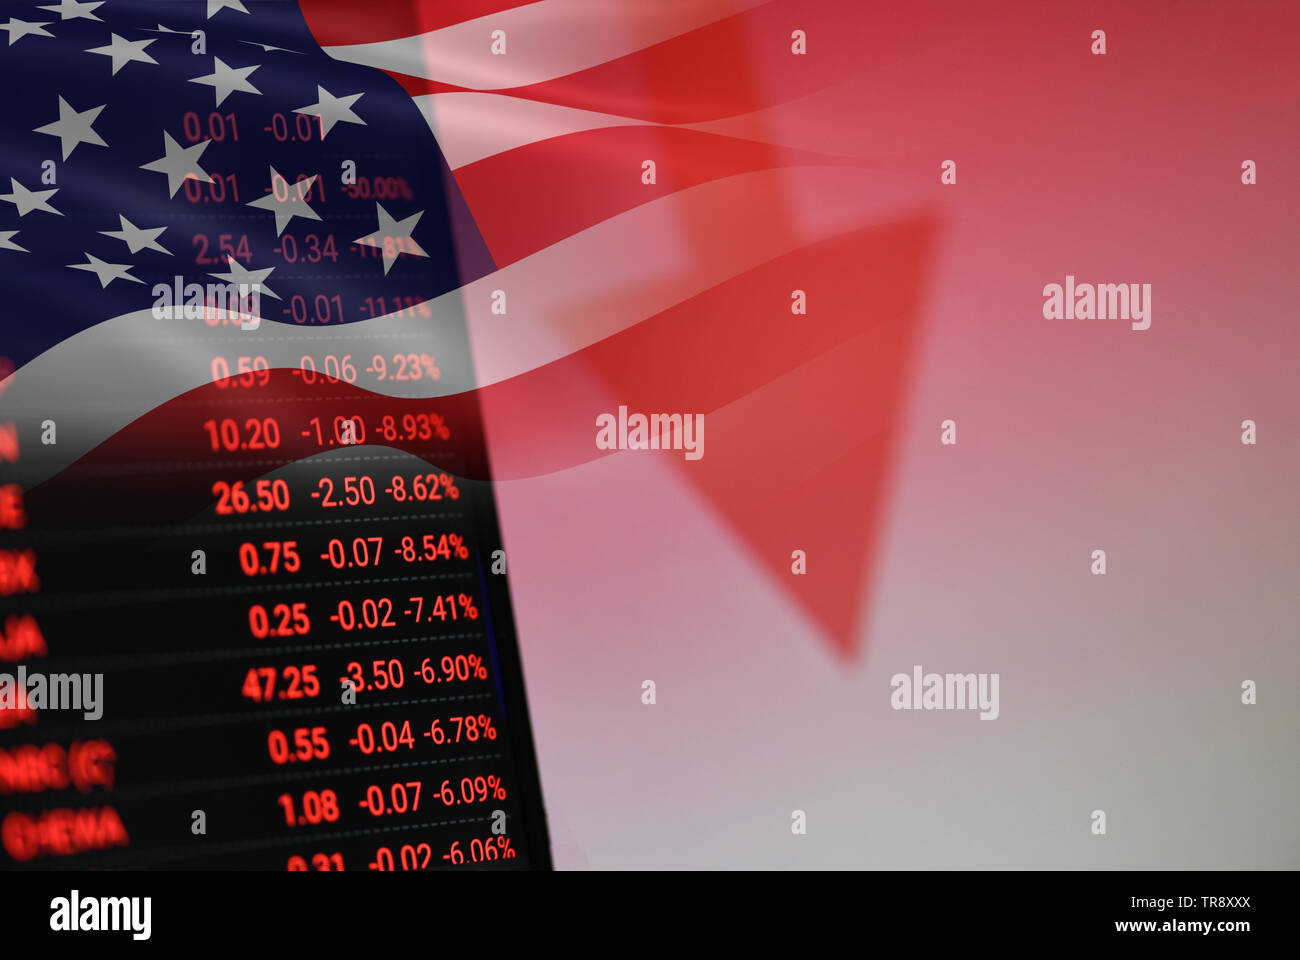 USA. America stock market crisis red price arrow down chart fall / New york Stock Exchange analysis or forex graph business finance money losing movin - Stock Image